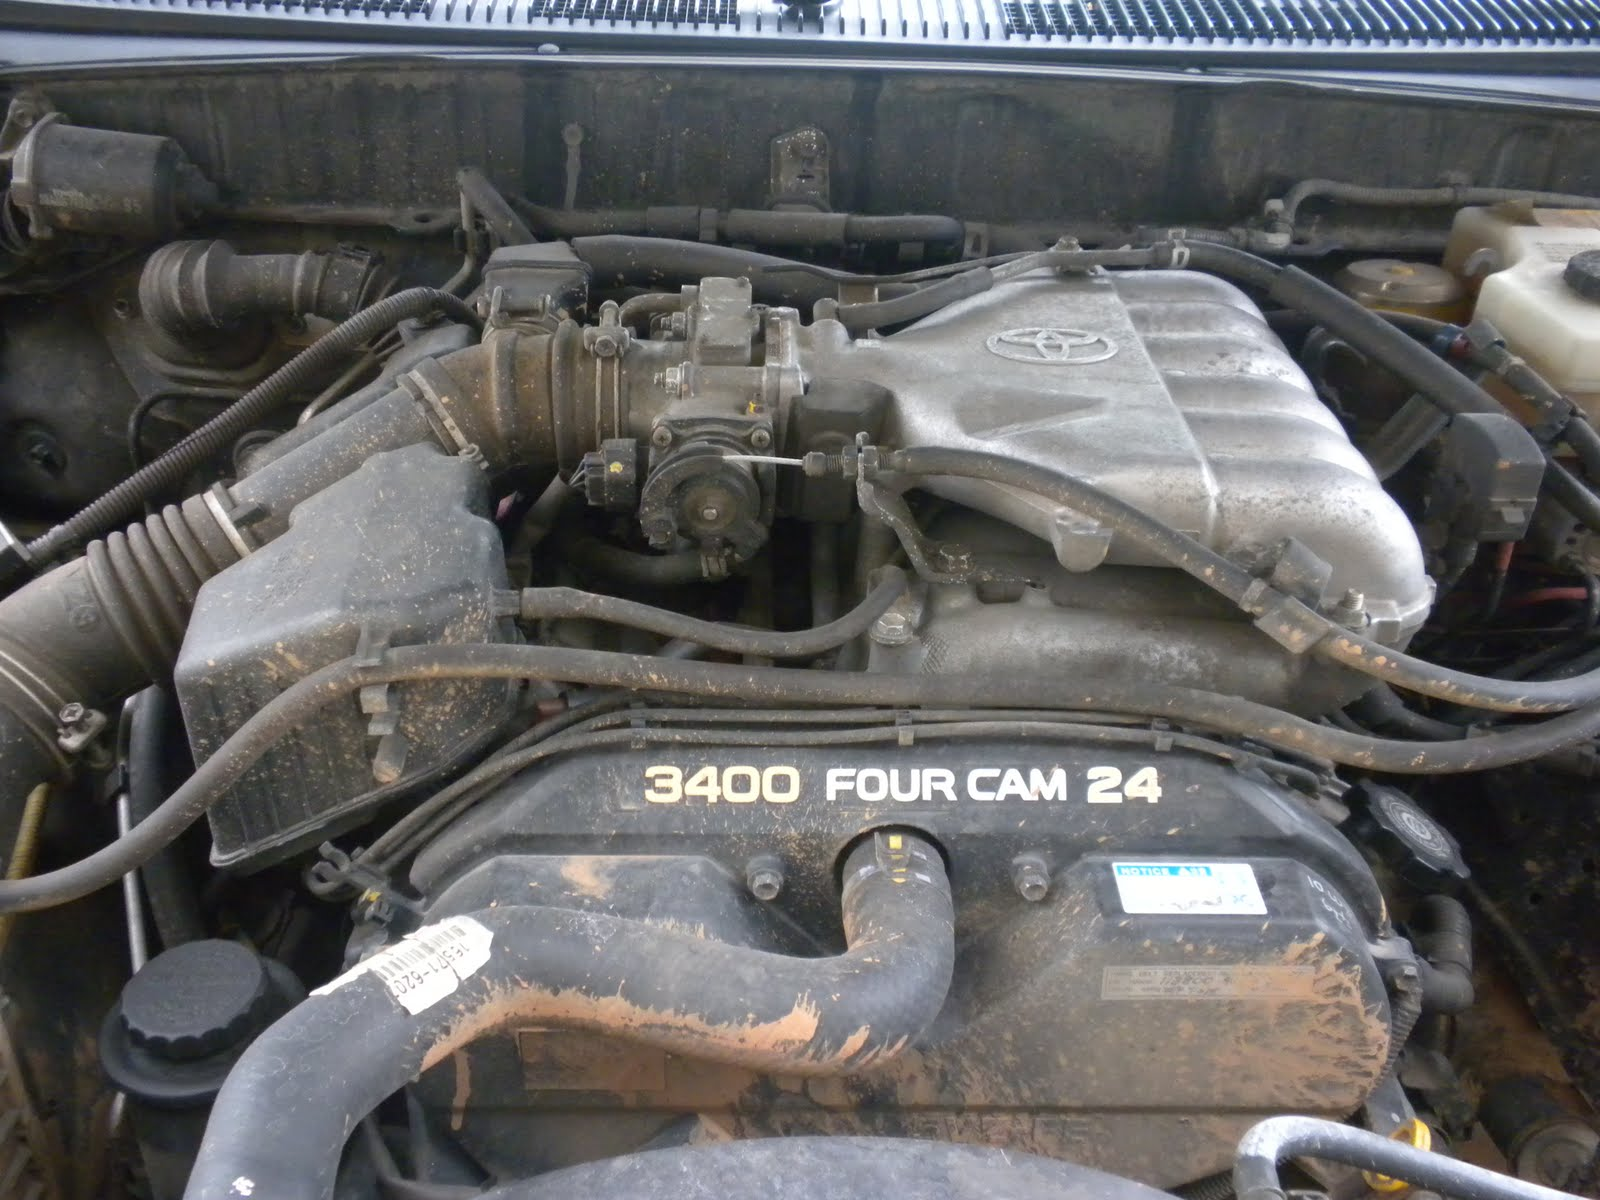 small resolution of my car battles spark plug wires on my 02 toyota 4runner 3 4 l v6 rh mycarbattles blogspot com 3400 engine performance 3400 sfi v6 engine diagram